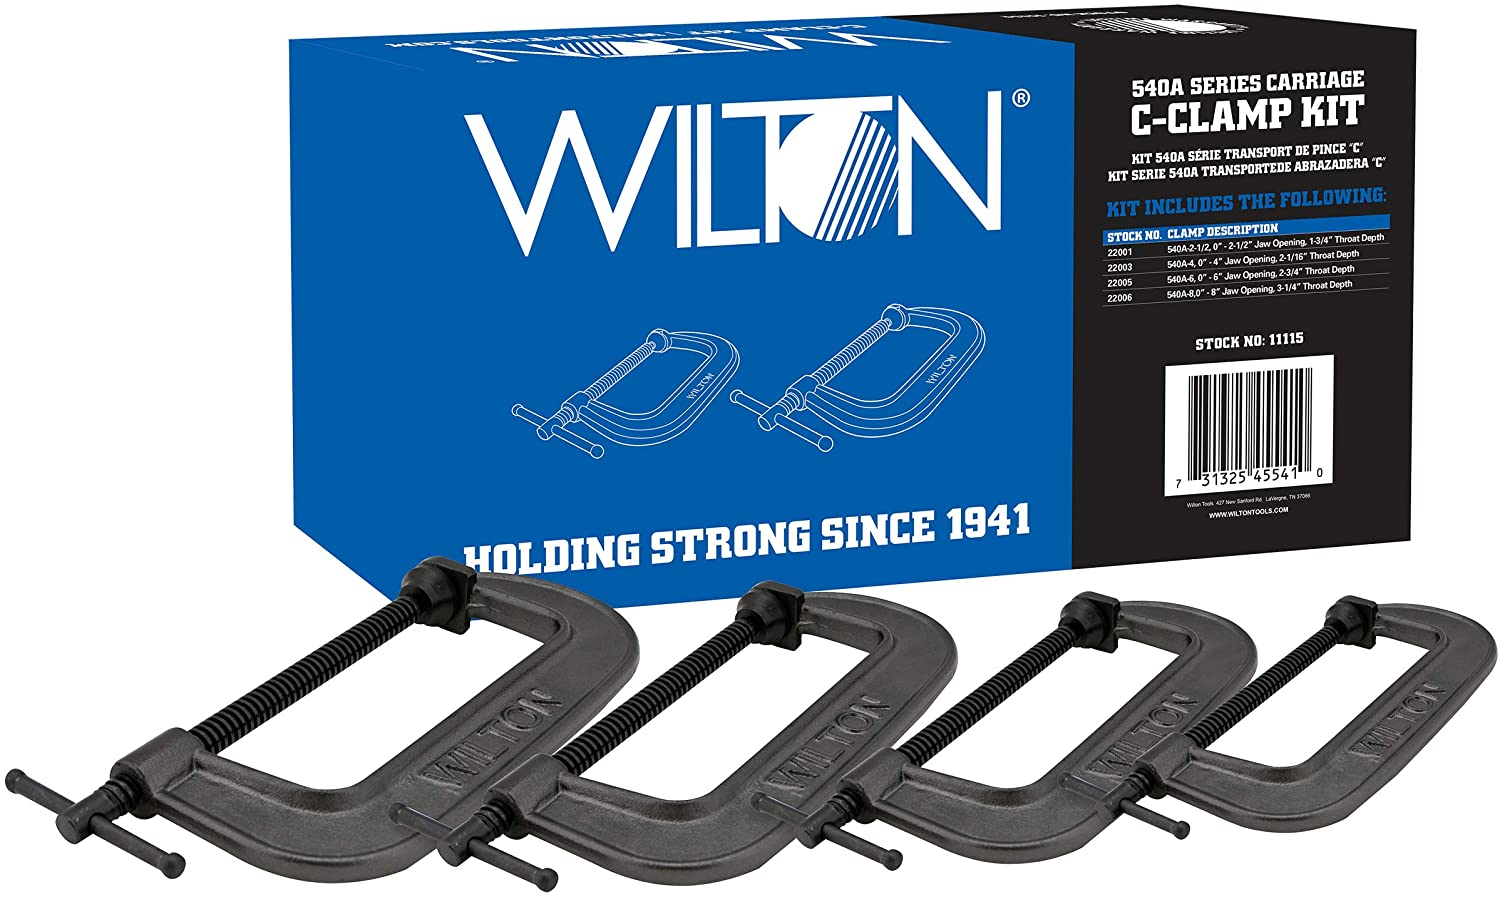 Wilton Max 83% OFFicial mail order OFF 540A Series Carriage 11115 C-Clamp Kit